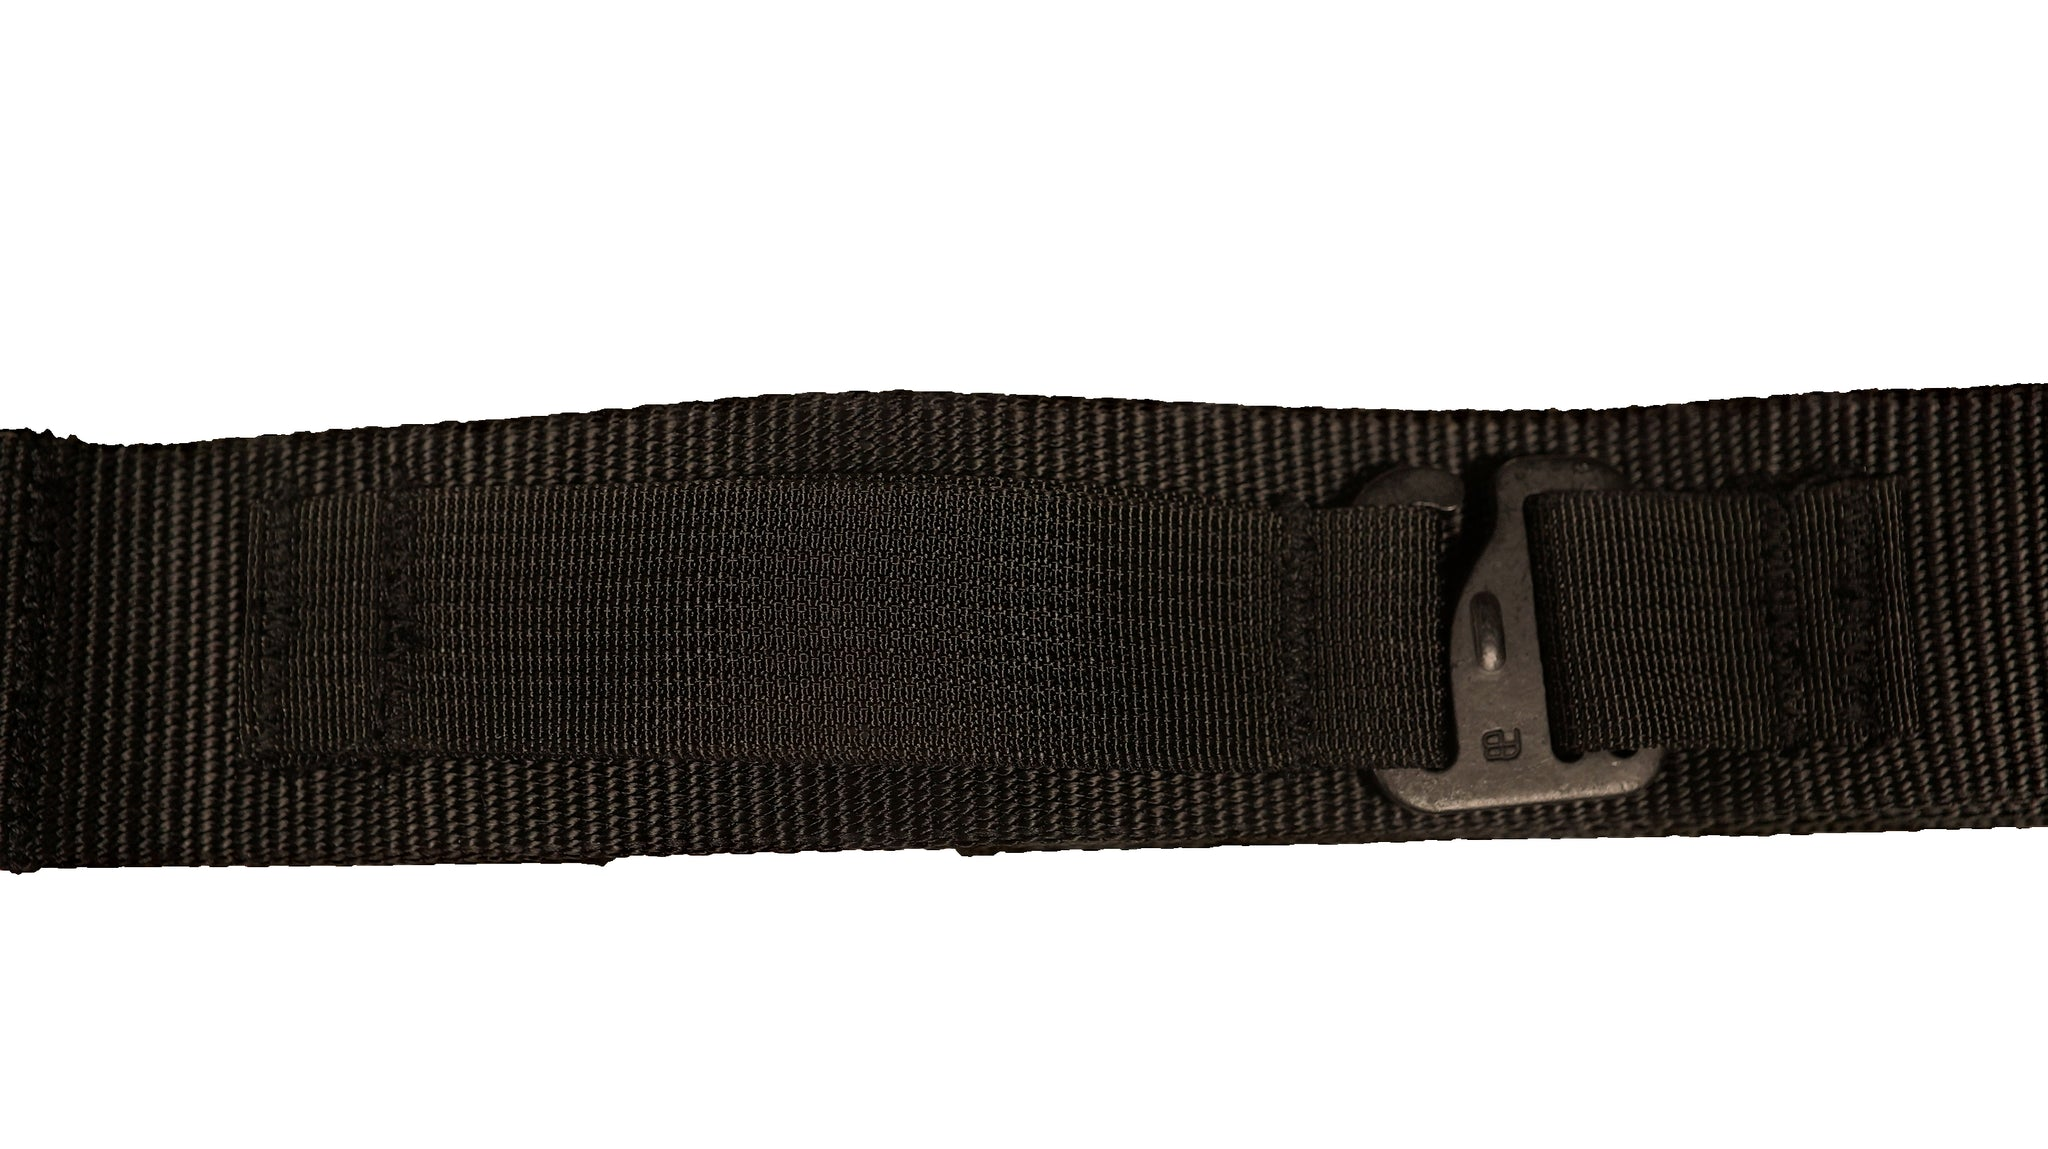 Black DBF Belt: Zoomed-in image of nylon loop and metal hook designed to securely fix a TLD in place.